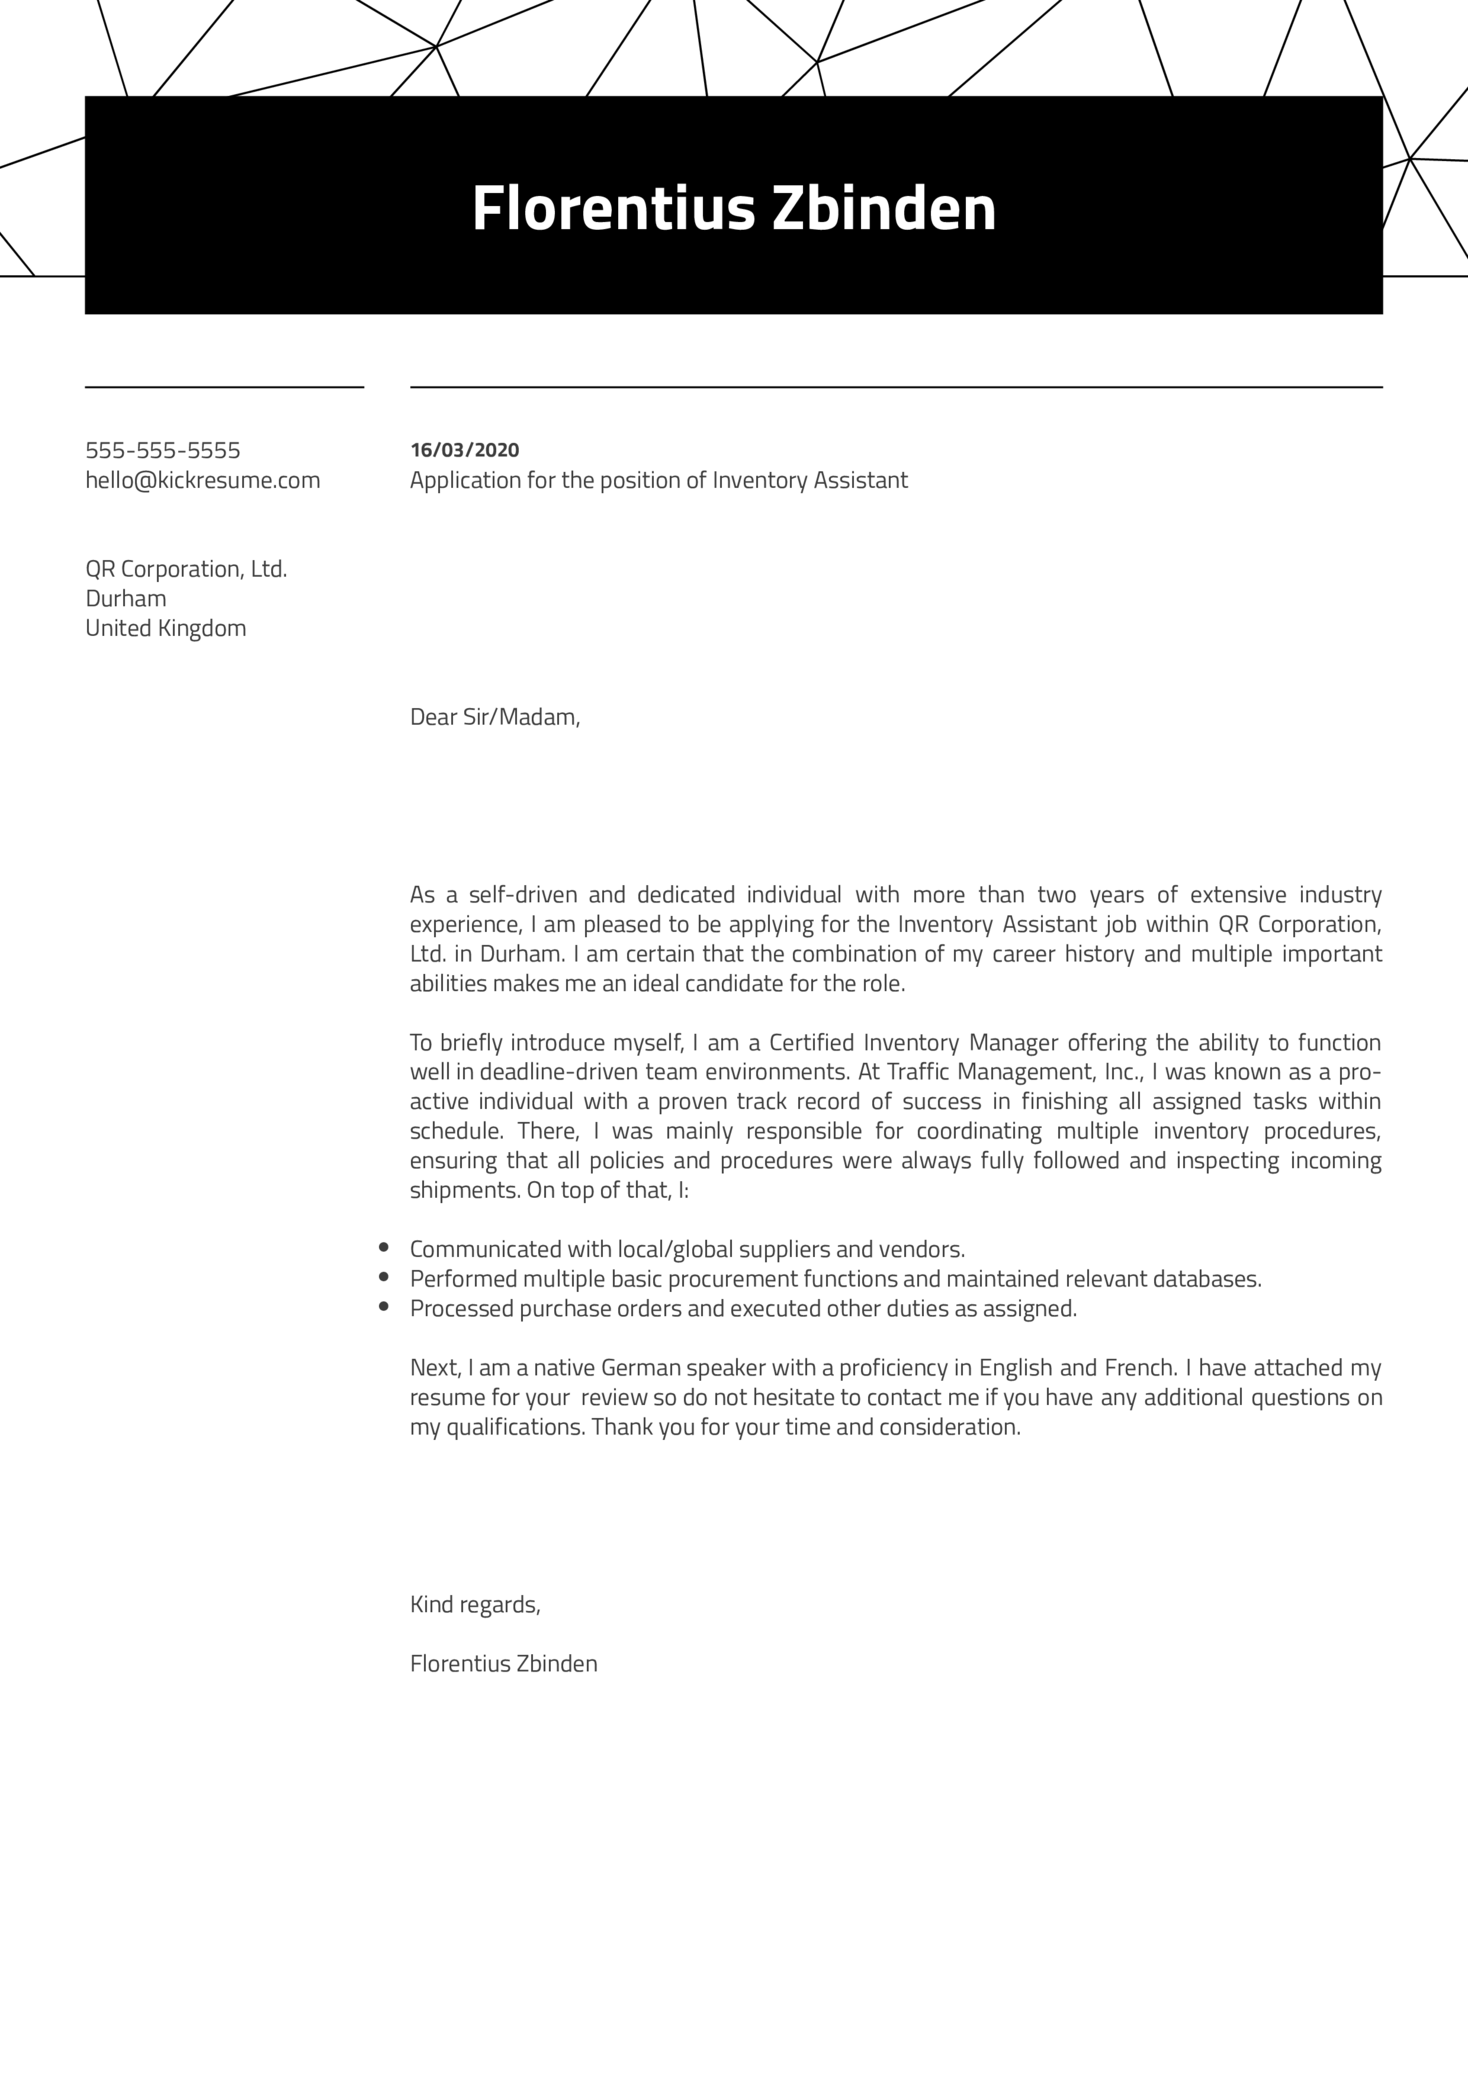 Inventory Assistant Cover Letter Sample